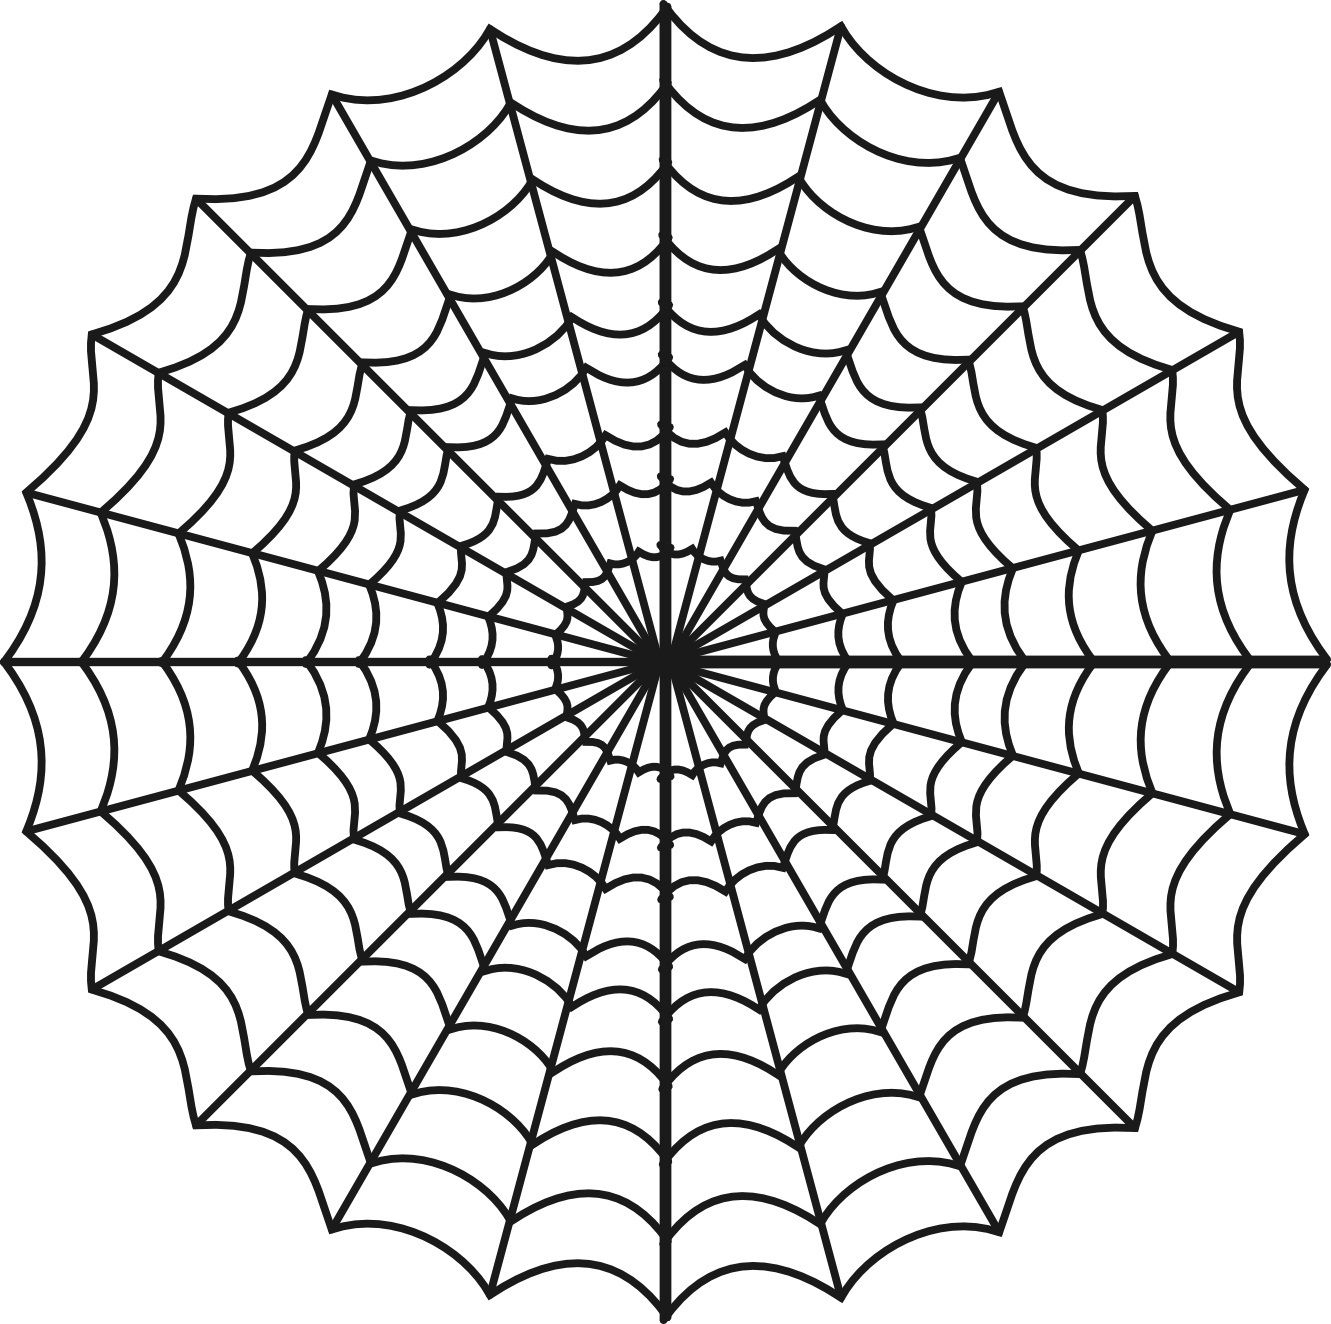 Free Printable Spider Web Coloring Pages For Kids Inside | Me - Spider Web Stencil Free Printable